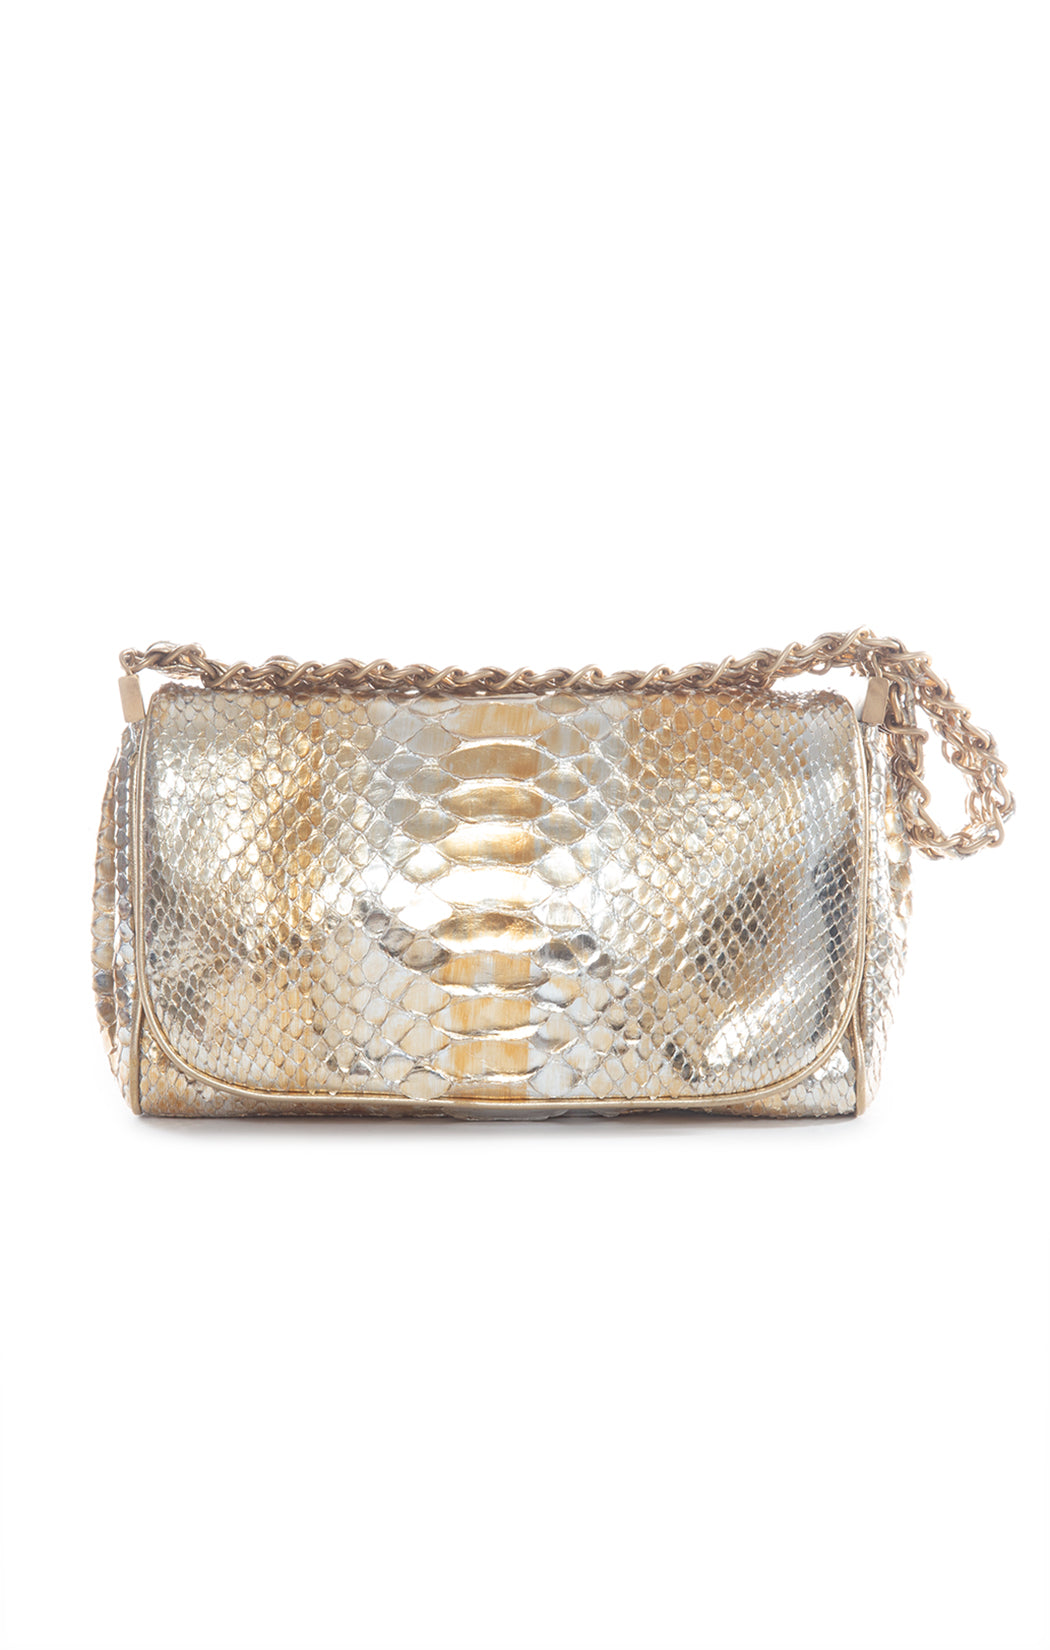 "Front view of CHANEL Shoulder Bag Size: 10.5"" x 6"" x 2"""